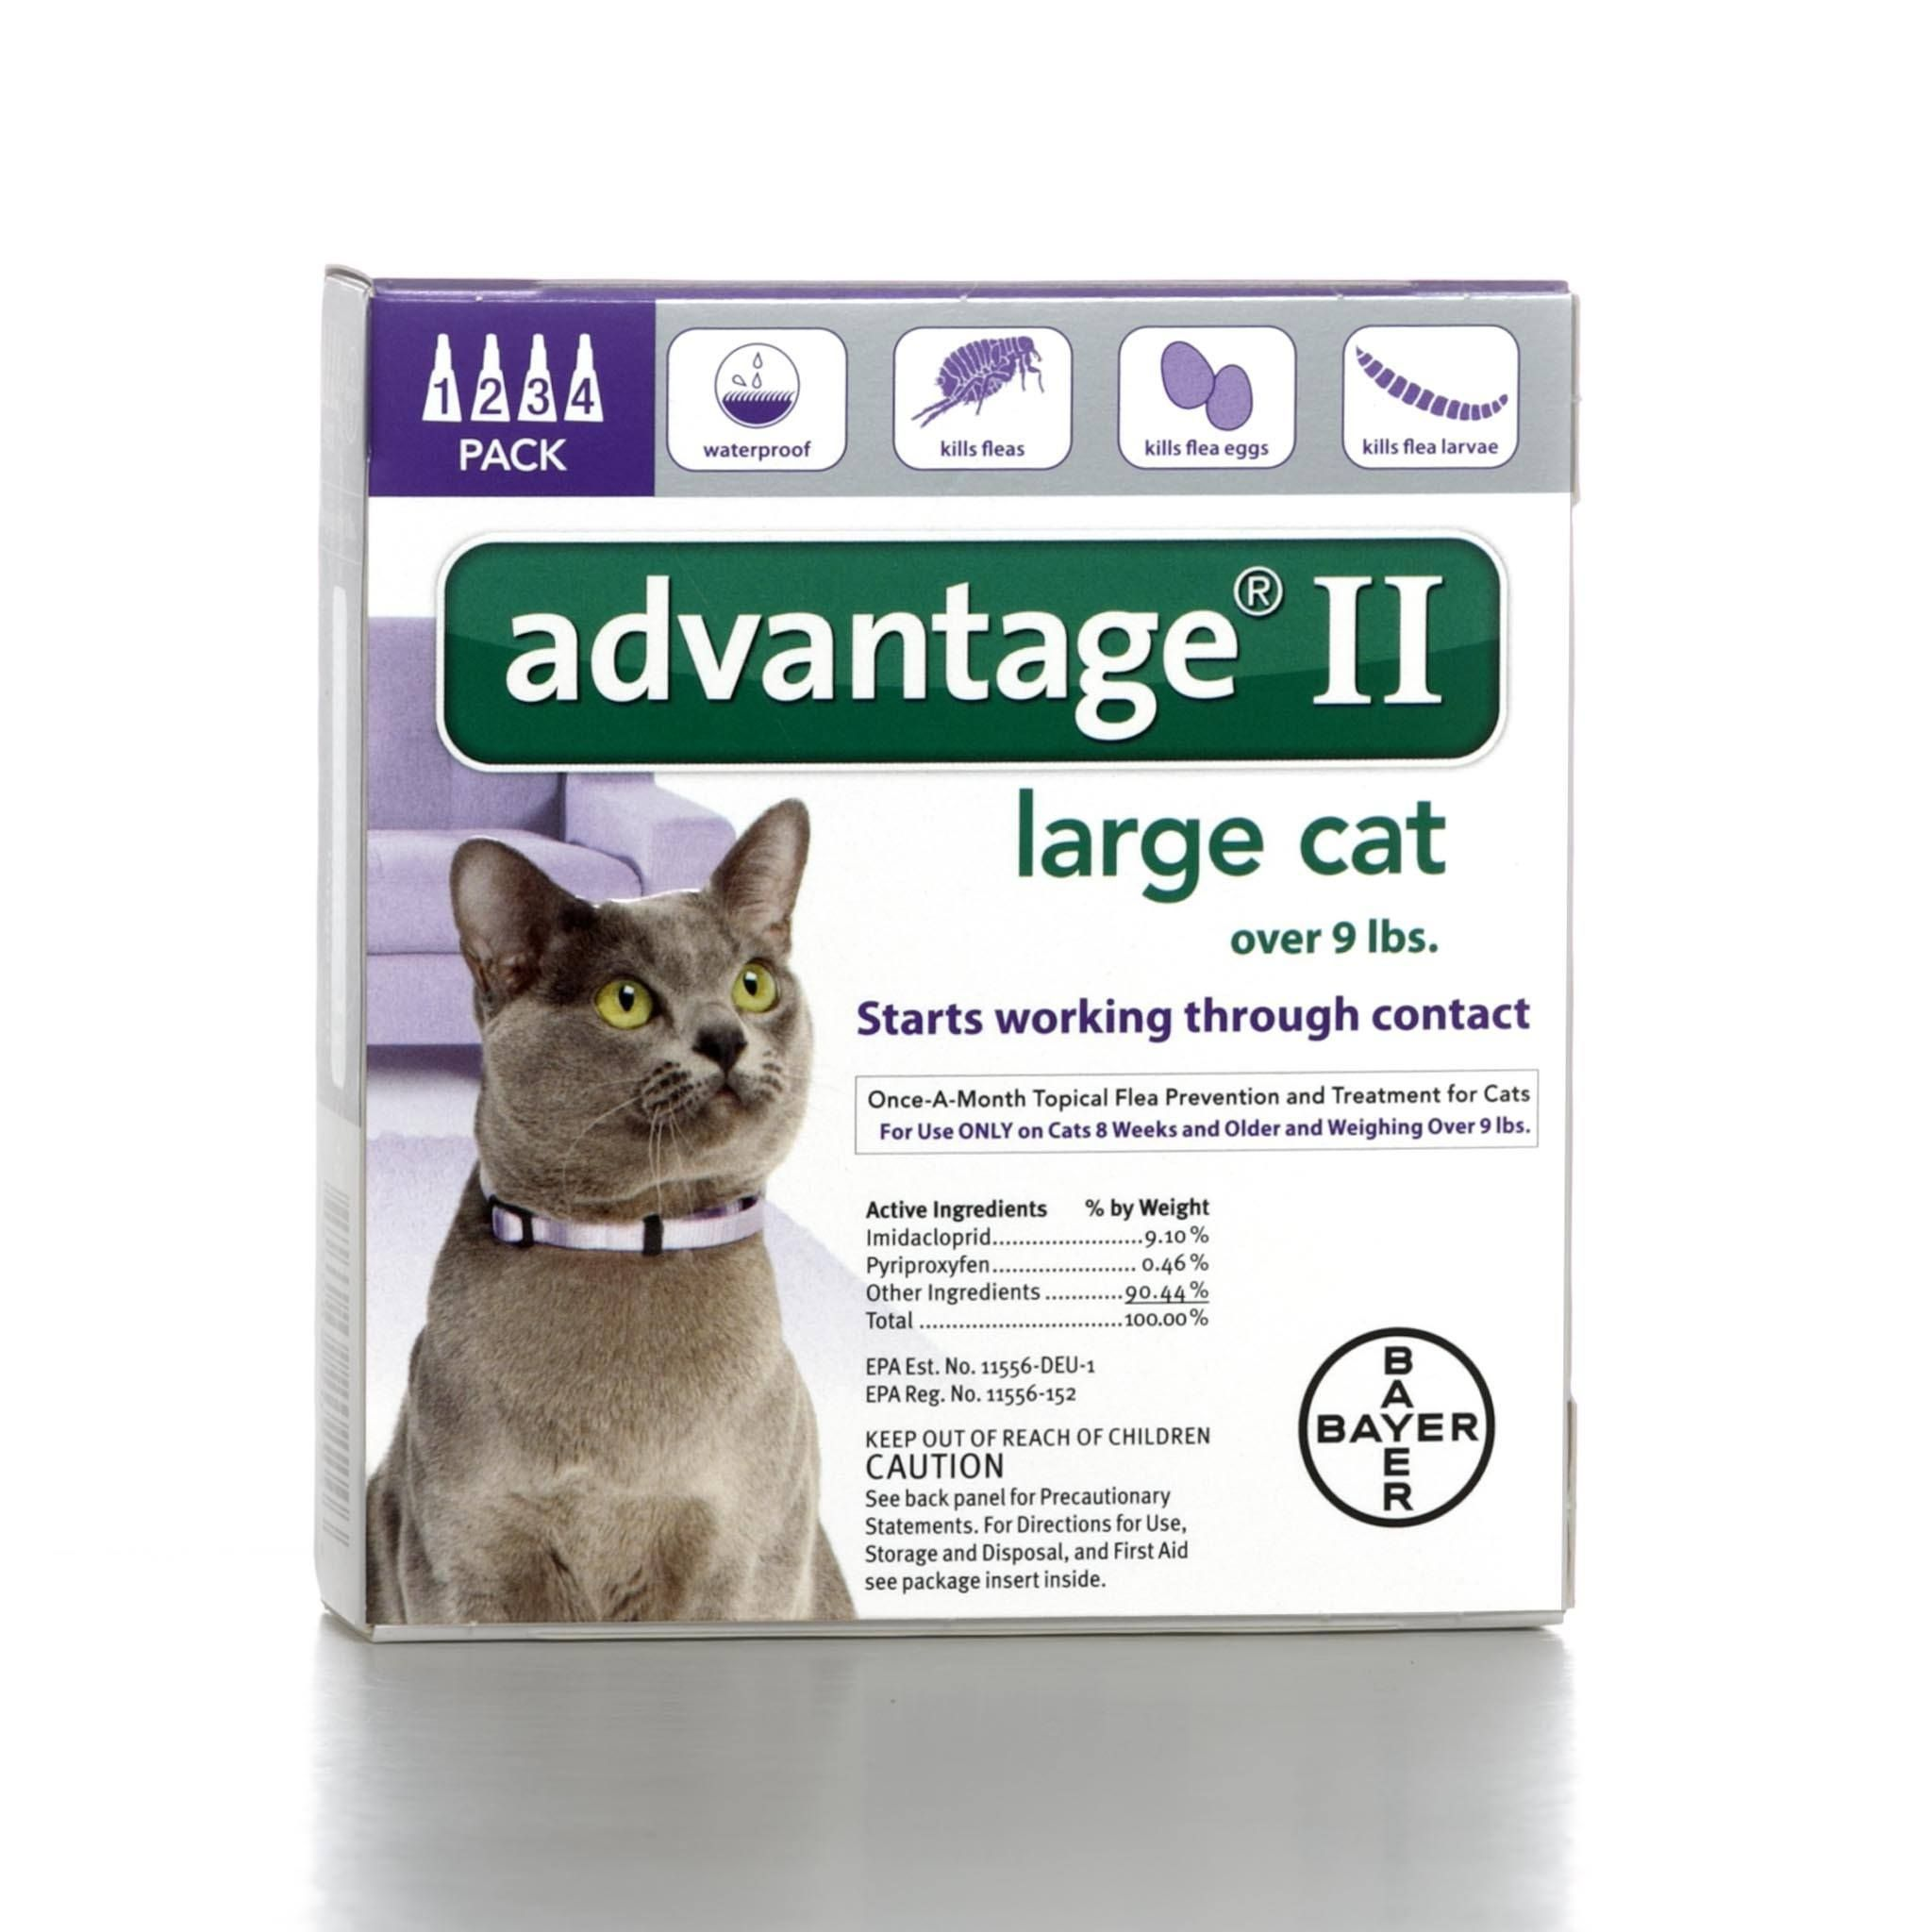 Bayer Advantage Ii Flea Prevention For Cats Over 9 Lbs